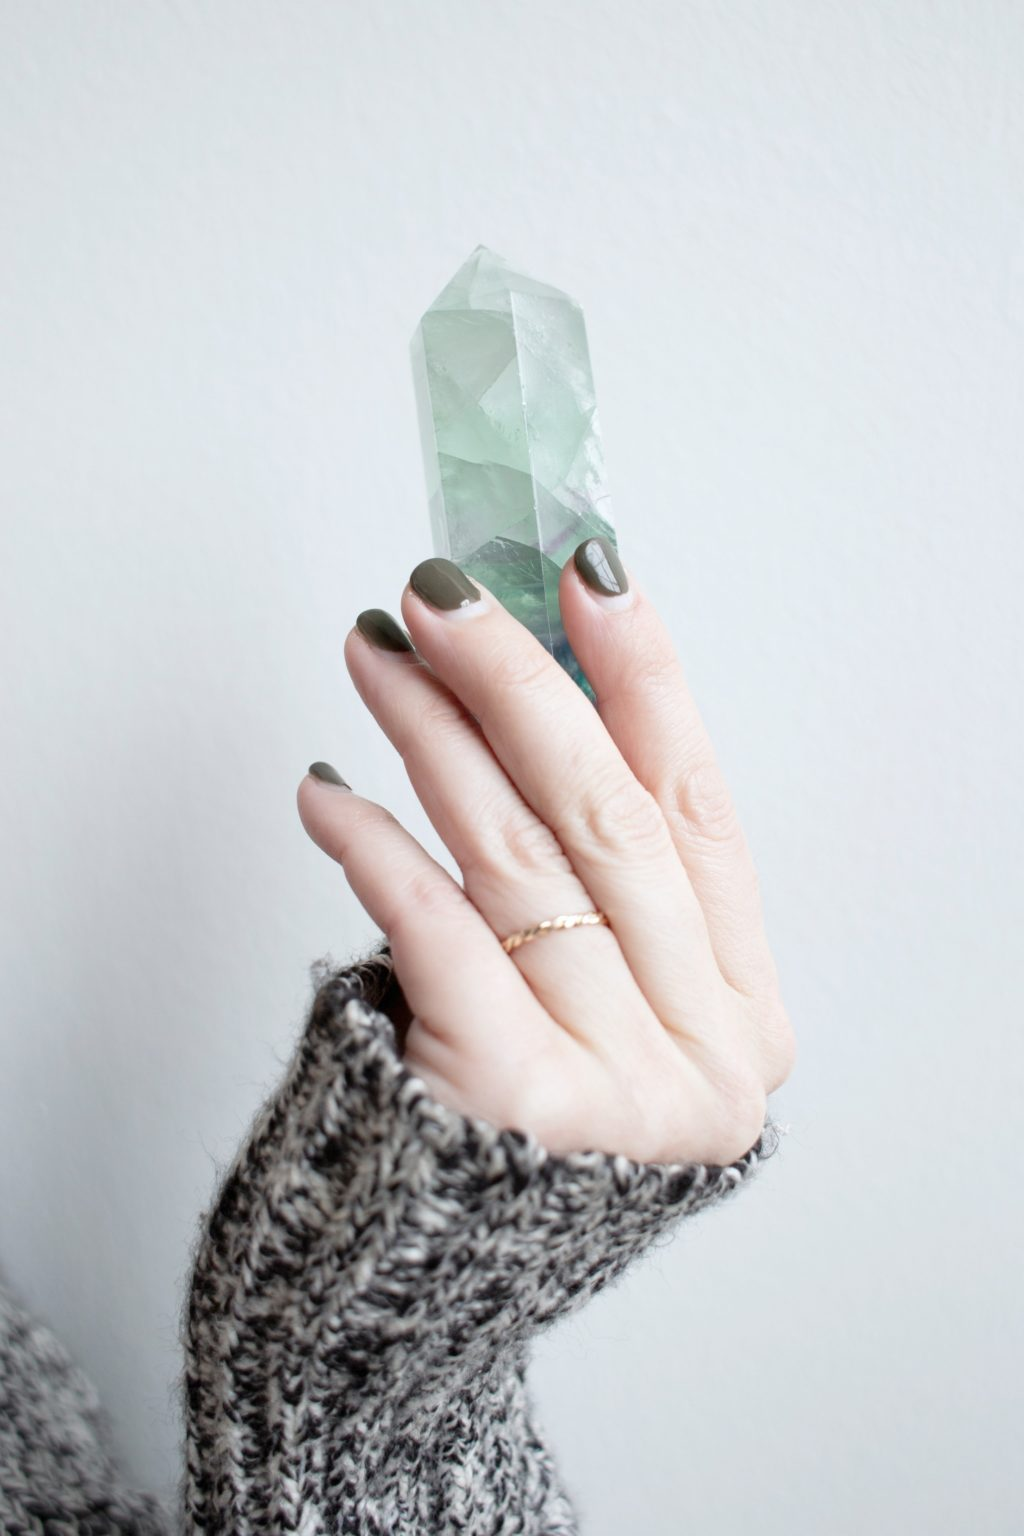 A woman wearing a grey wool sweater is holding a teal/aqua gemstone in her hand.